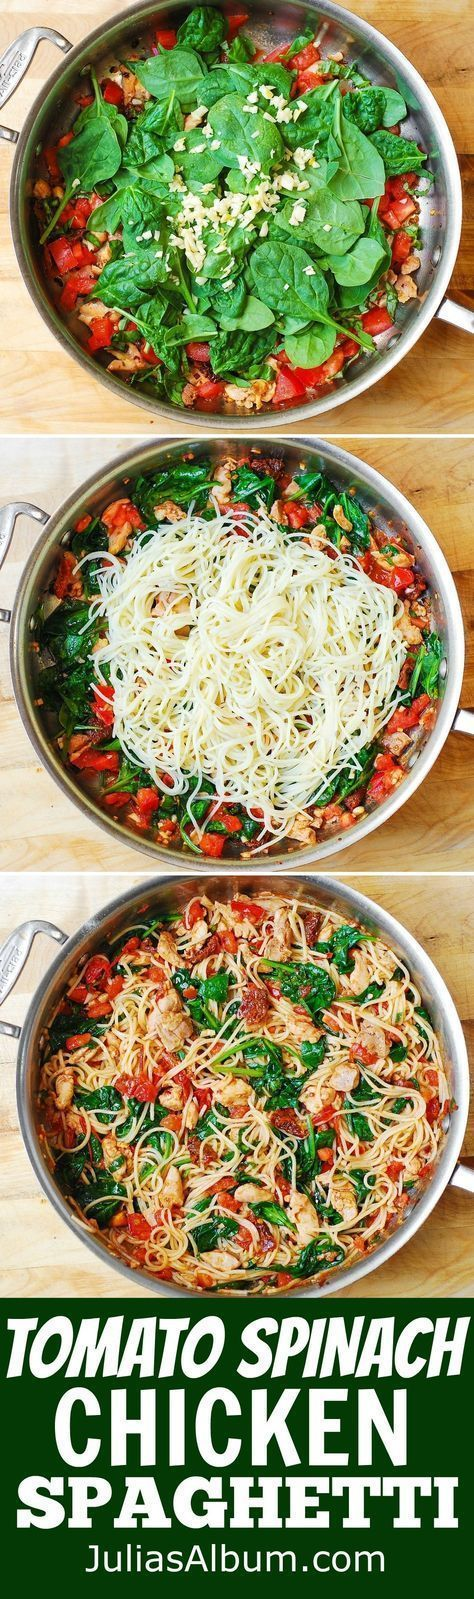 Basil & Spinach Chicken Spaghetti – healthy, light, Mediterranean style dinner, packed with vegetables, protein and good oils. Delicious comfort